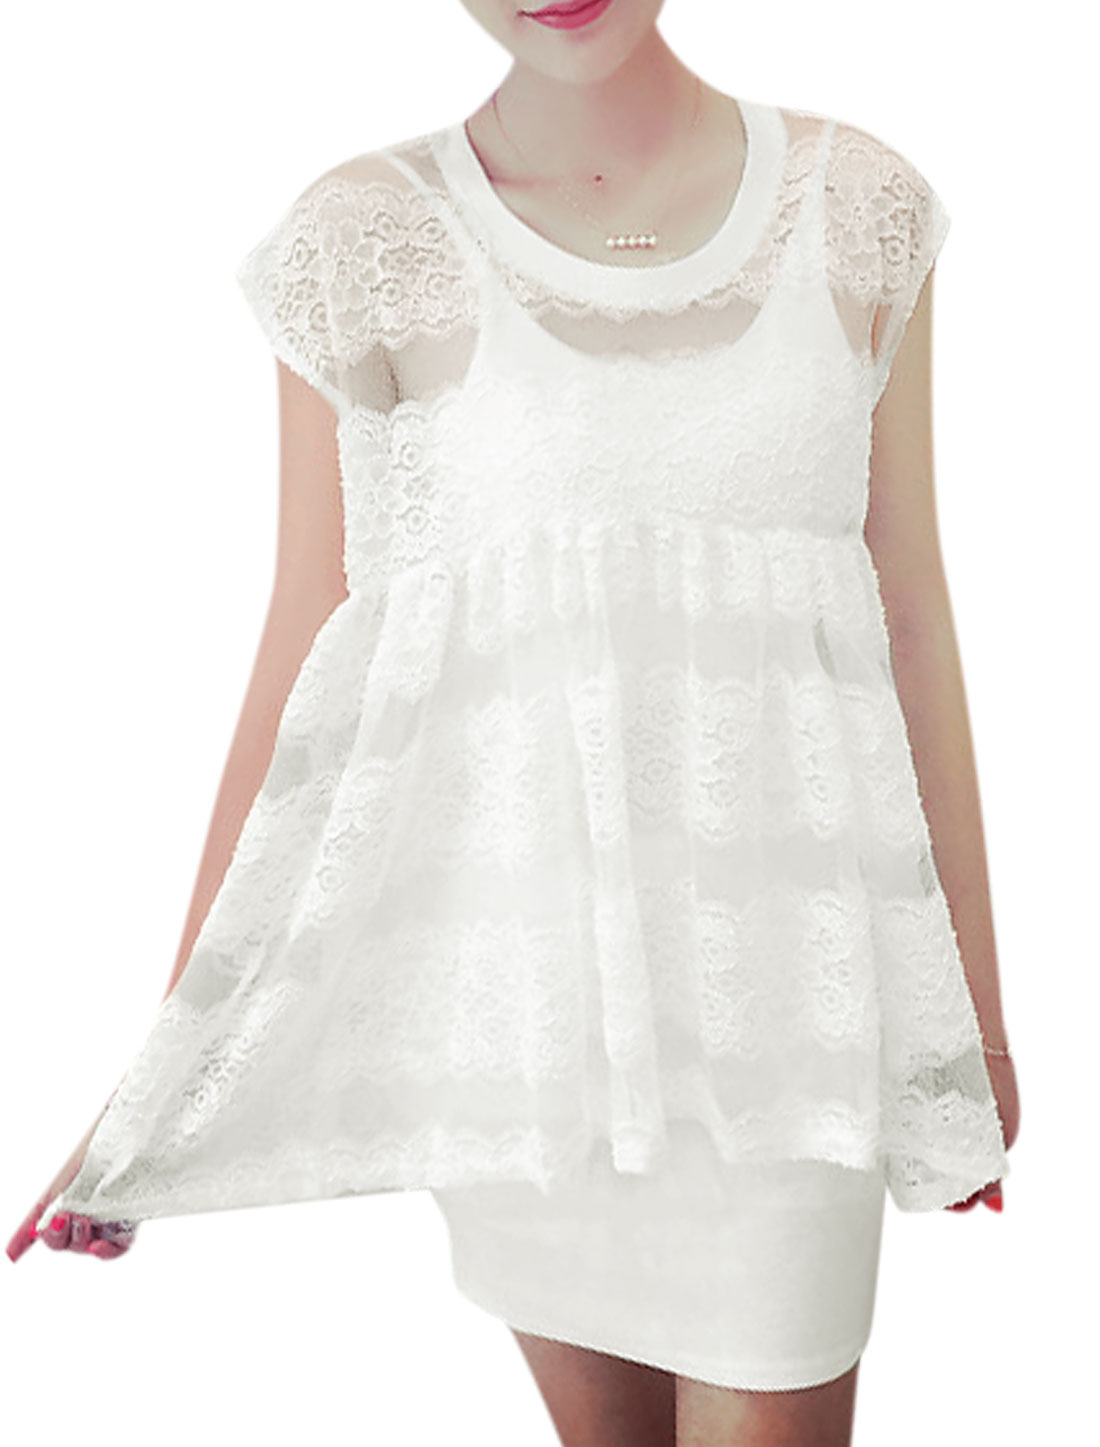 Women Lace Panel Semi Sheer Mesh Shirts w Slim Fit Tank Dress Sets White XS